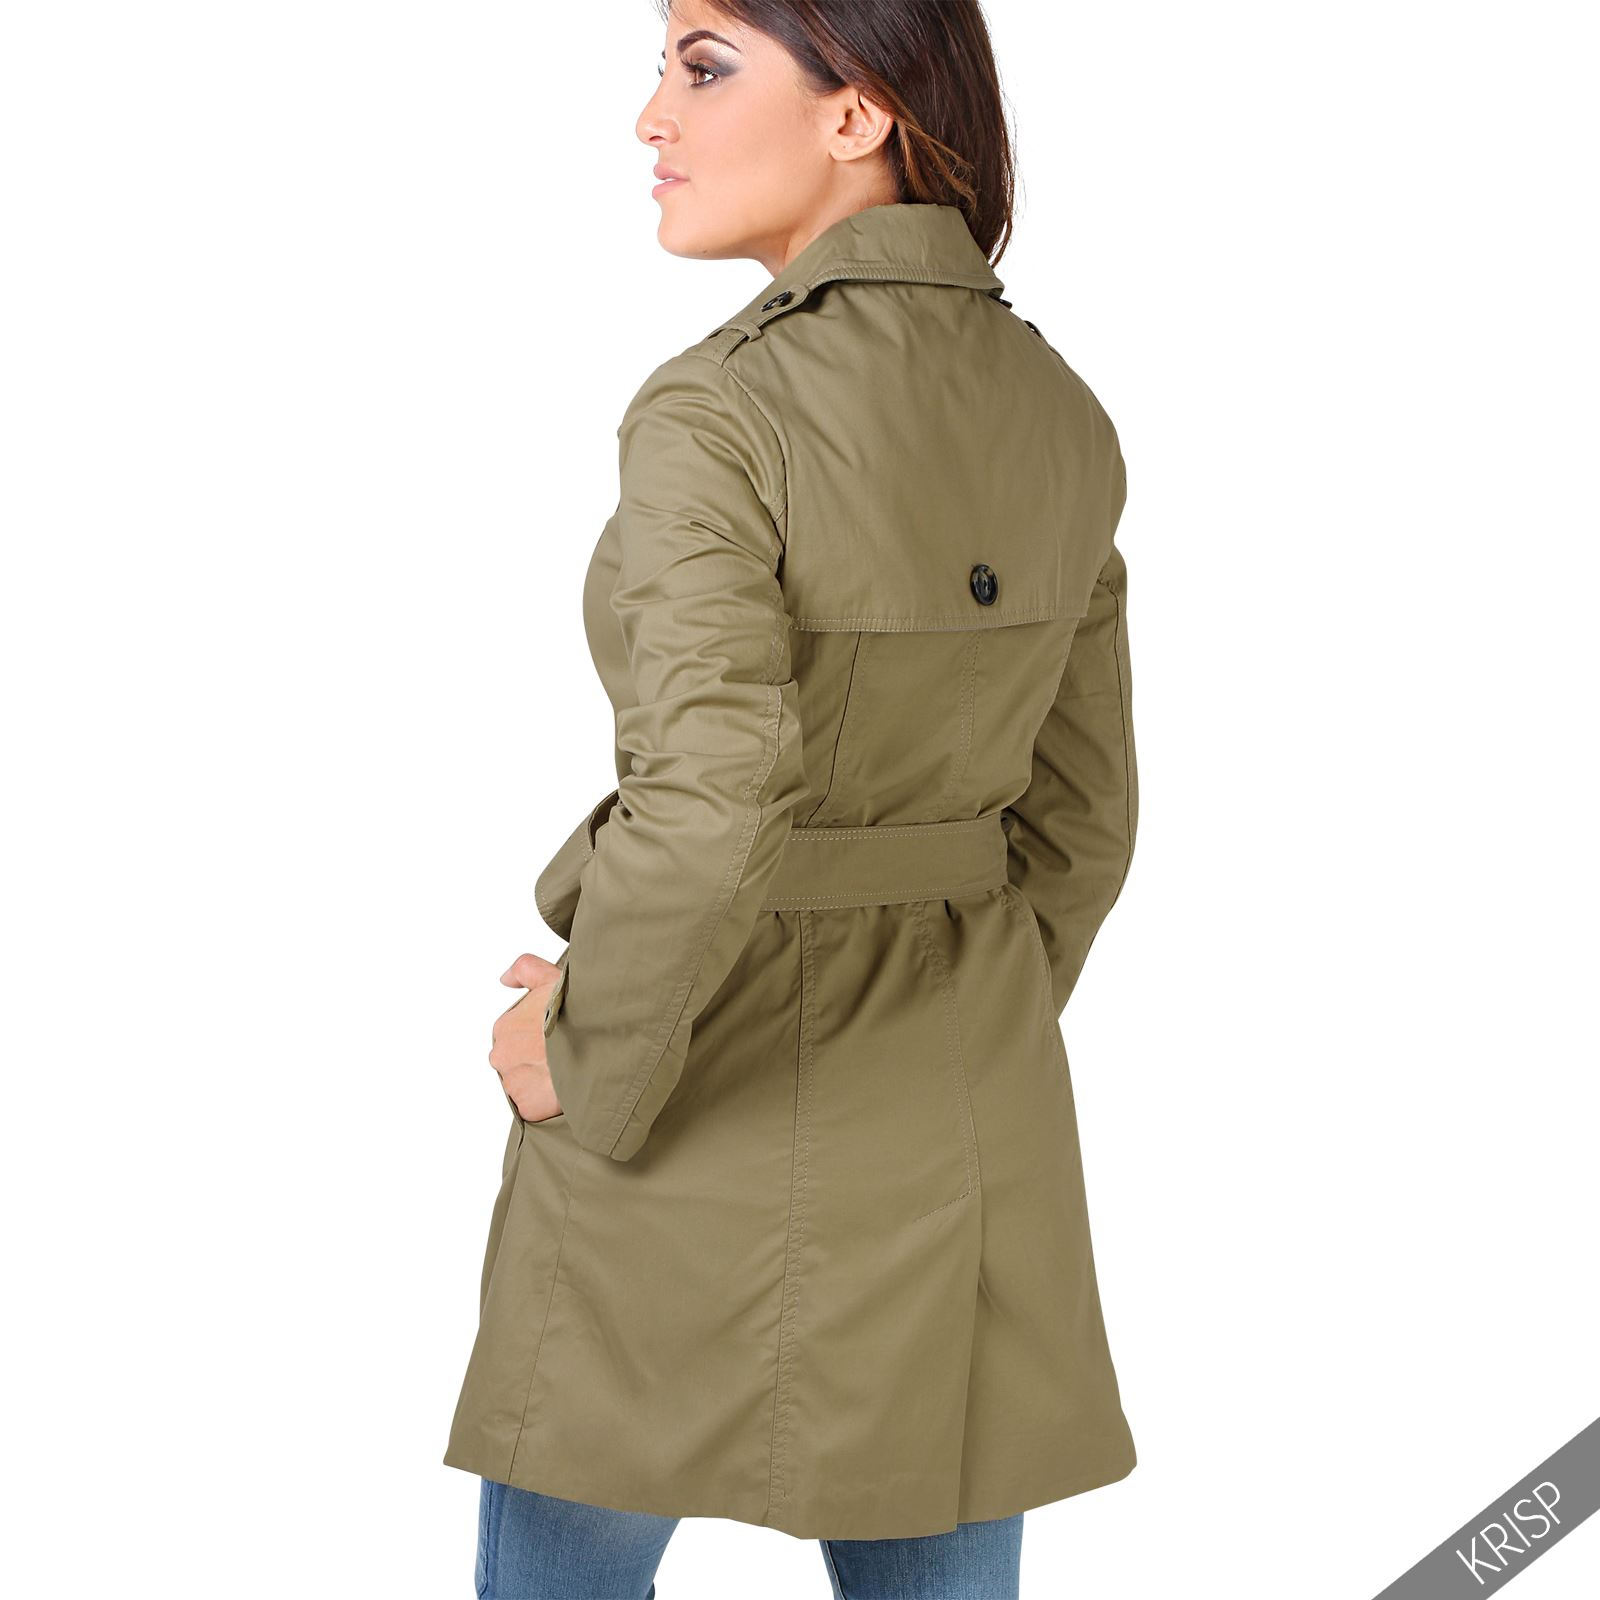 Style Tips: Light Trench Coats For Women 1 Comment If you are sick of wearing denim and leather jackets during the summer season, then you better check this post, where I am going to show you light trench coats what are ideal for hot summer days.